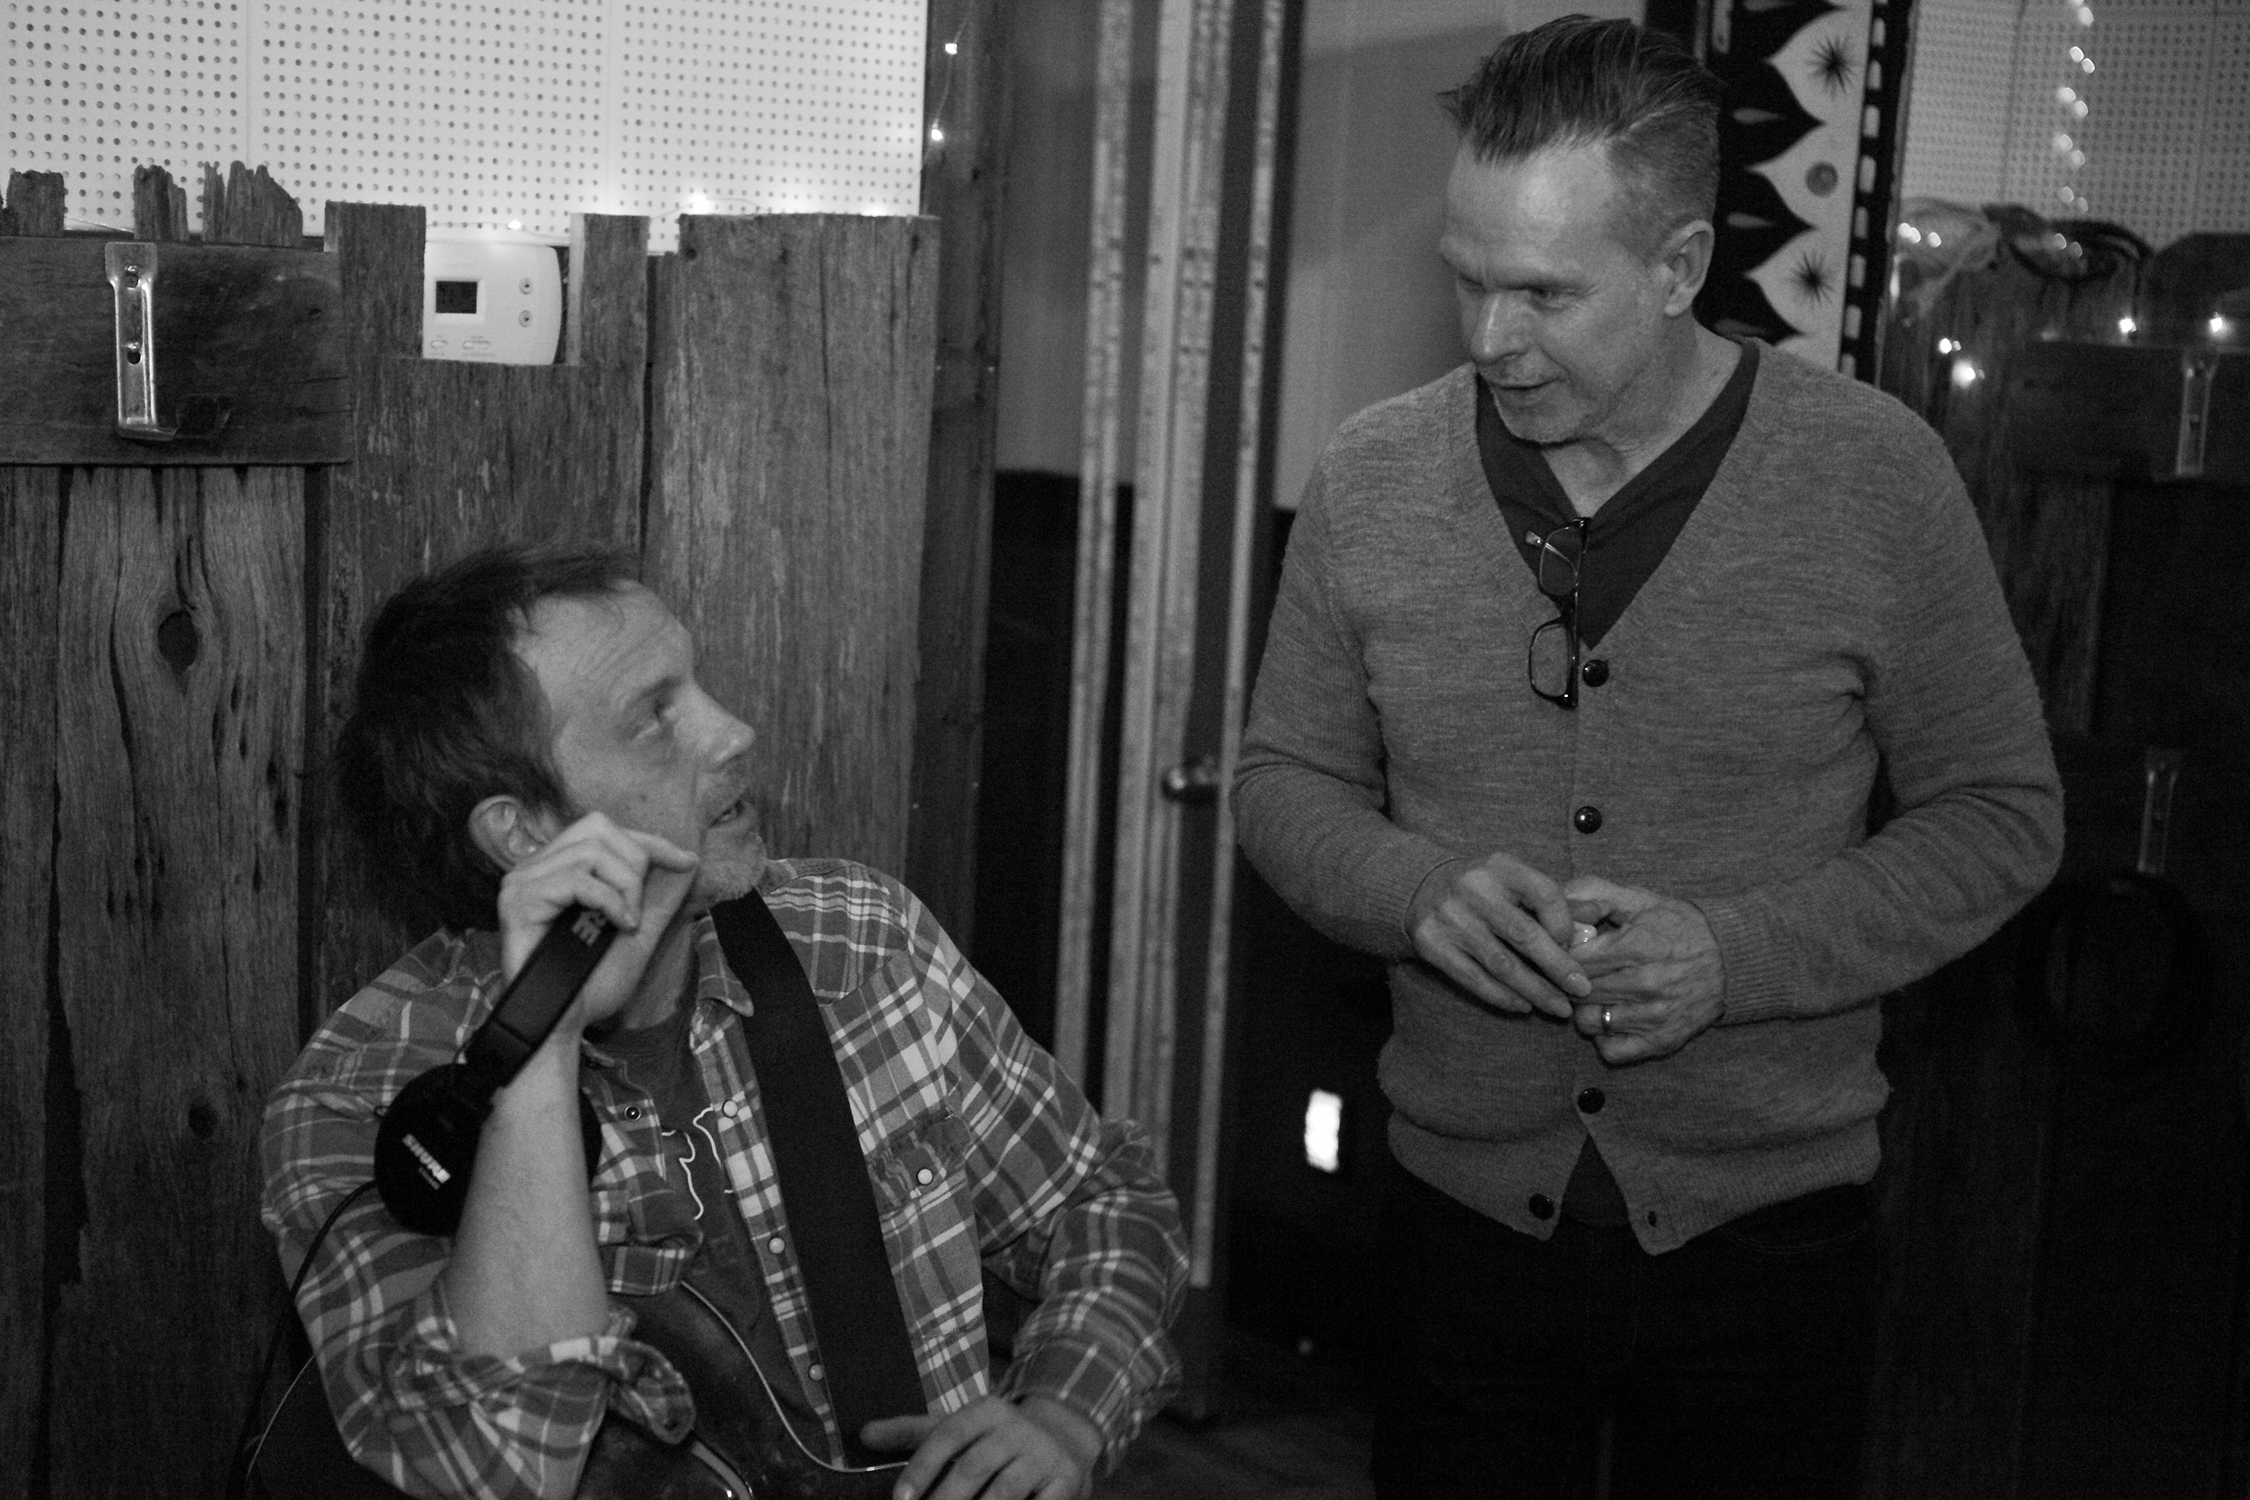 Guitarist Doug Lancio talking with Producer Rick Price during the recording of 'Broken Bread' at Sputnik Sounds studio in East Nashville. [Photo Credit: Price Harrison]